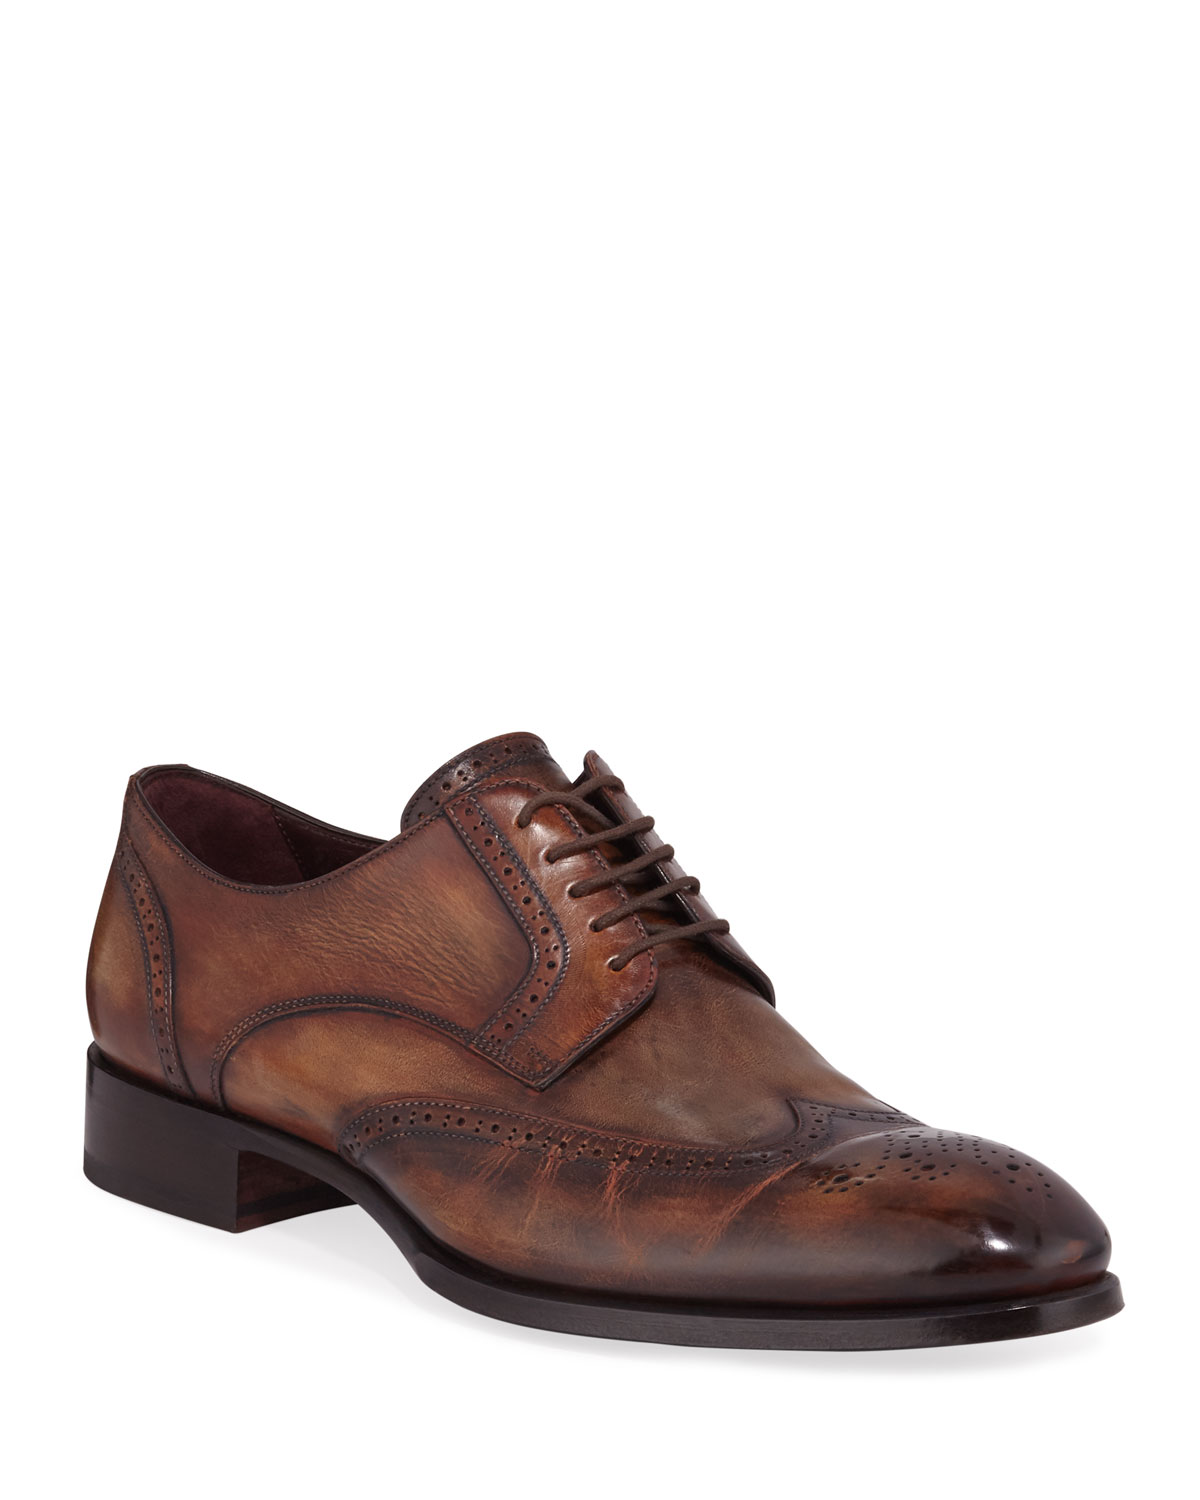 Brioni Shoes MEN'S WING-TIP LEATHER DERBY SHOES